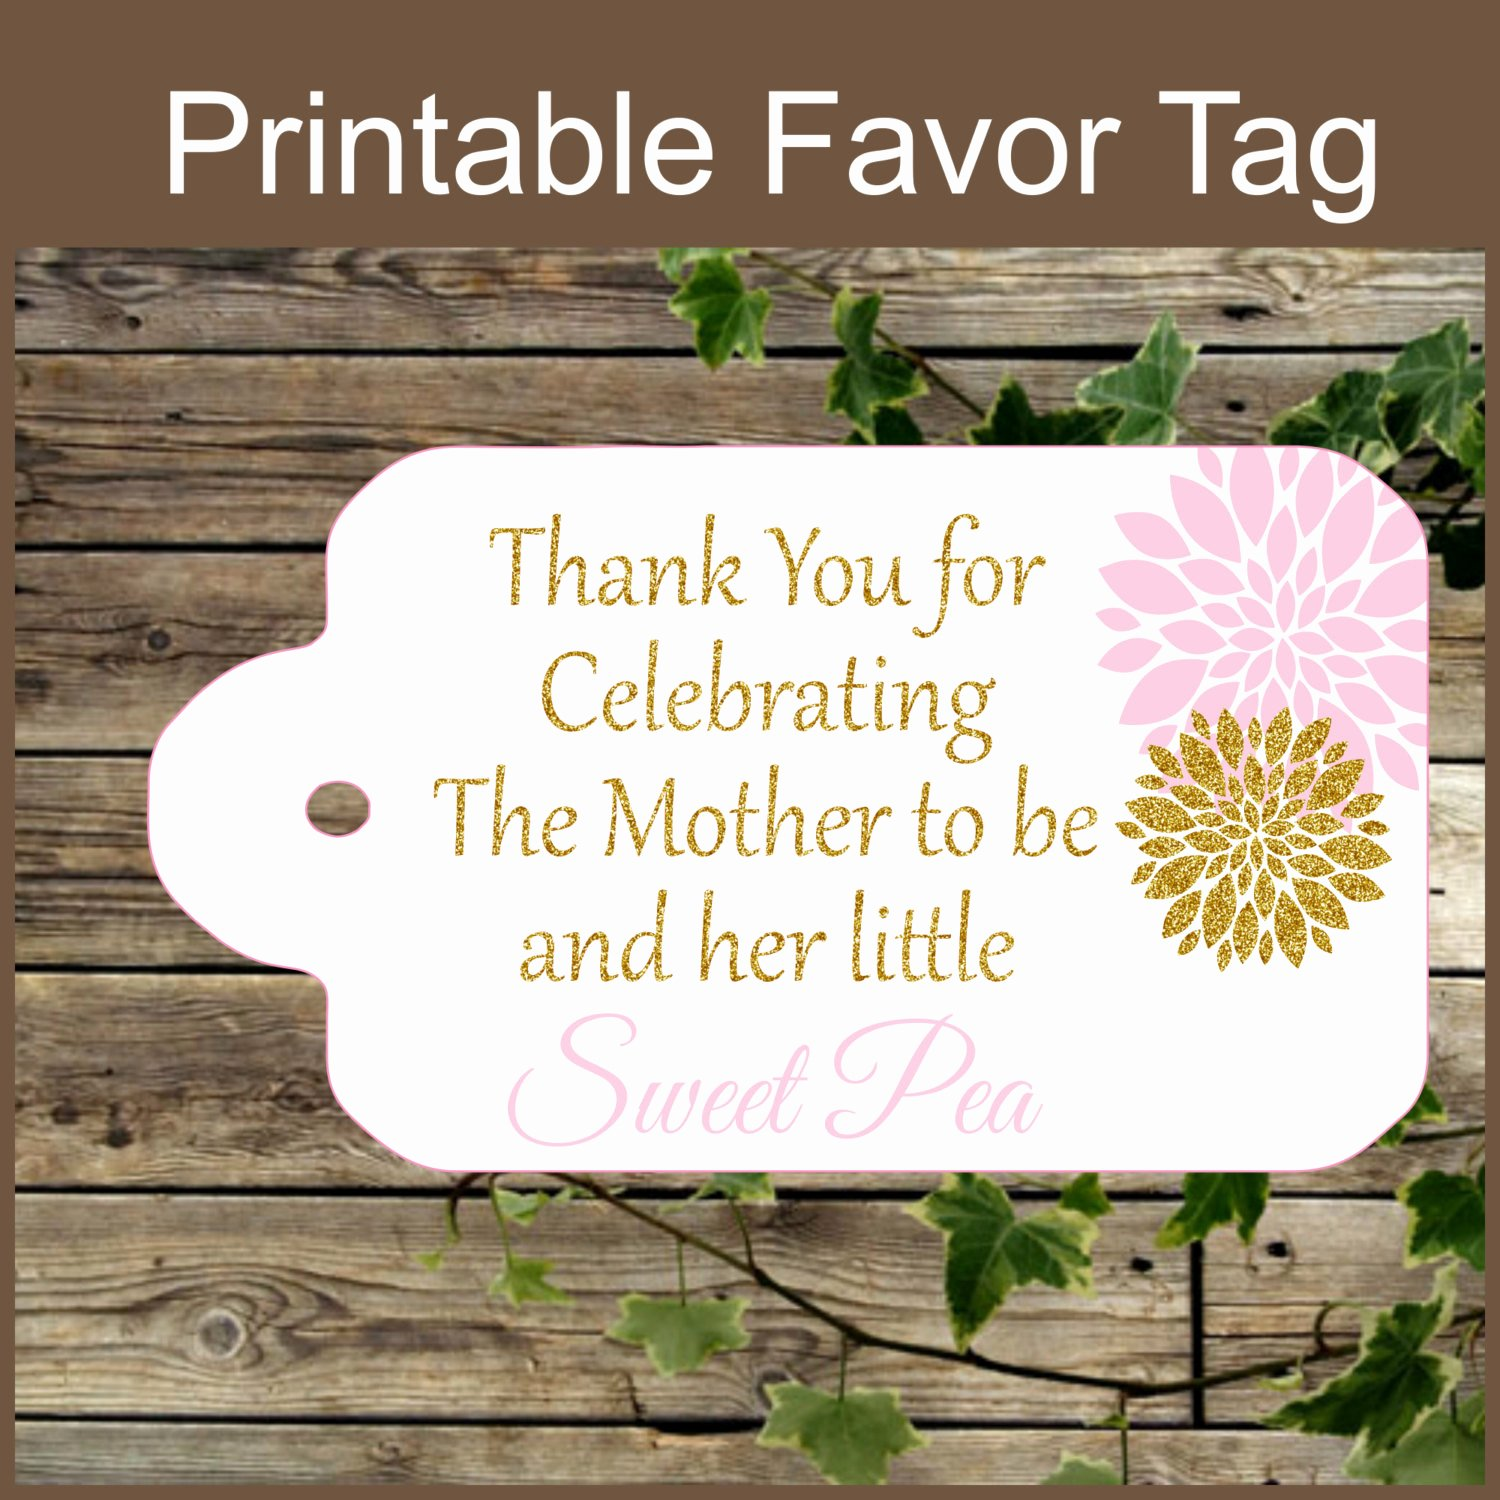 Printable Baby Shower Tags Luxury Pink and Gold Baby Shower Printable Favor Tag Sweet Pea Baby